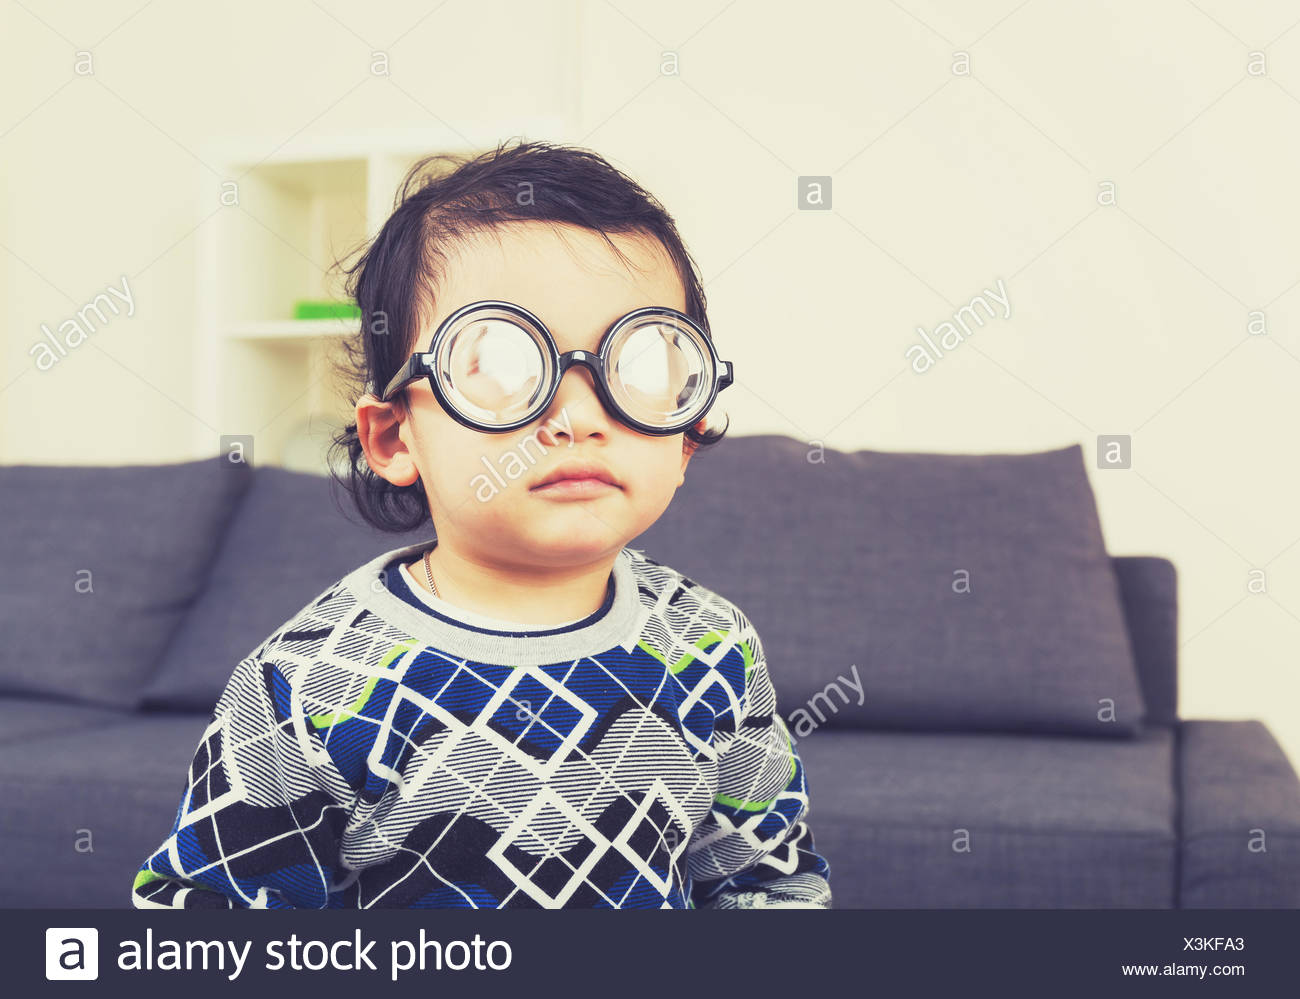 cba393d13cfea Boy Thick Glasses Stock Photos   Boy Thick Glasses Stock Images - Alamy